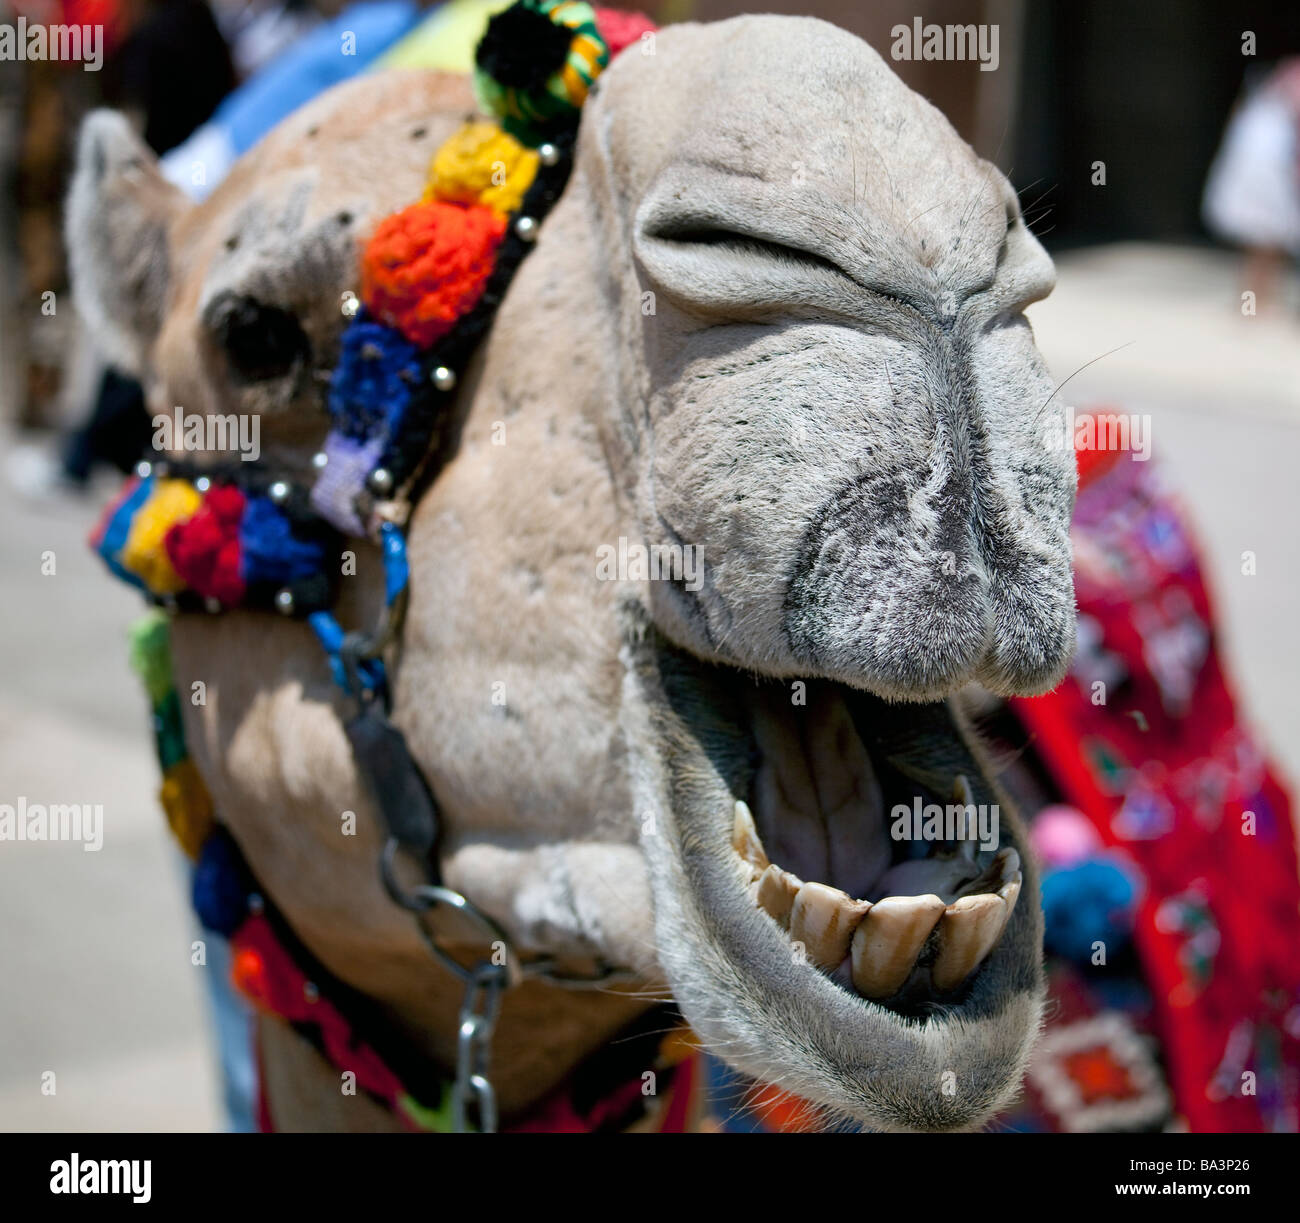 costumed camel at International Students' Day, American University in Cairo, Egypt - Stock Image